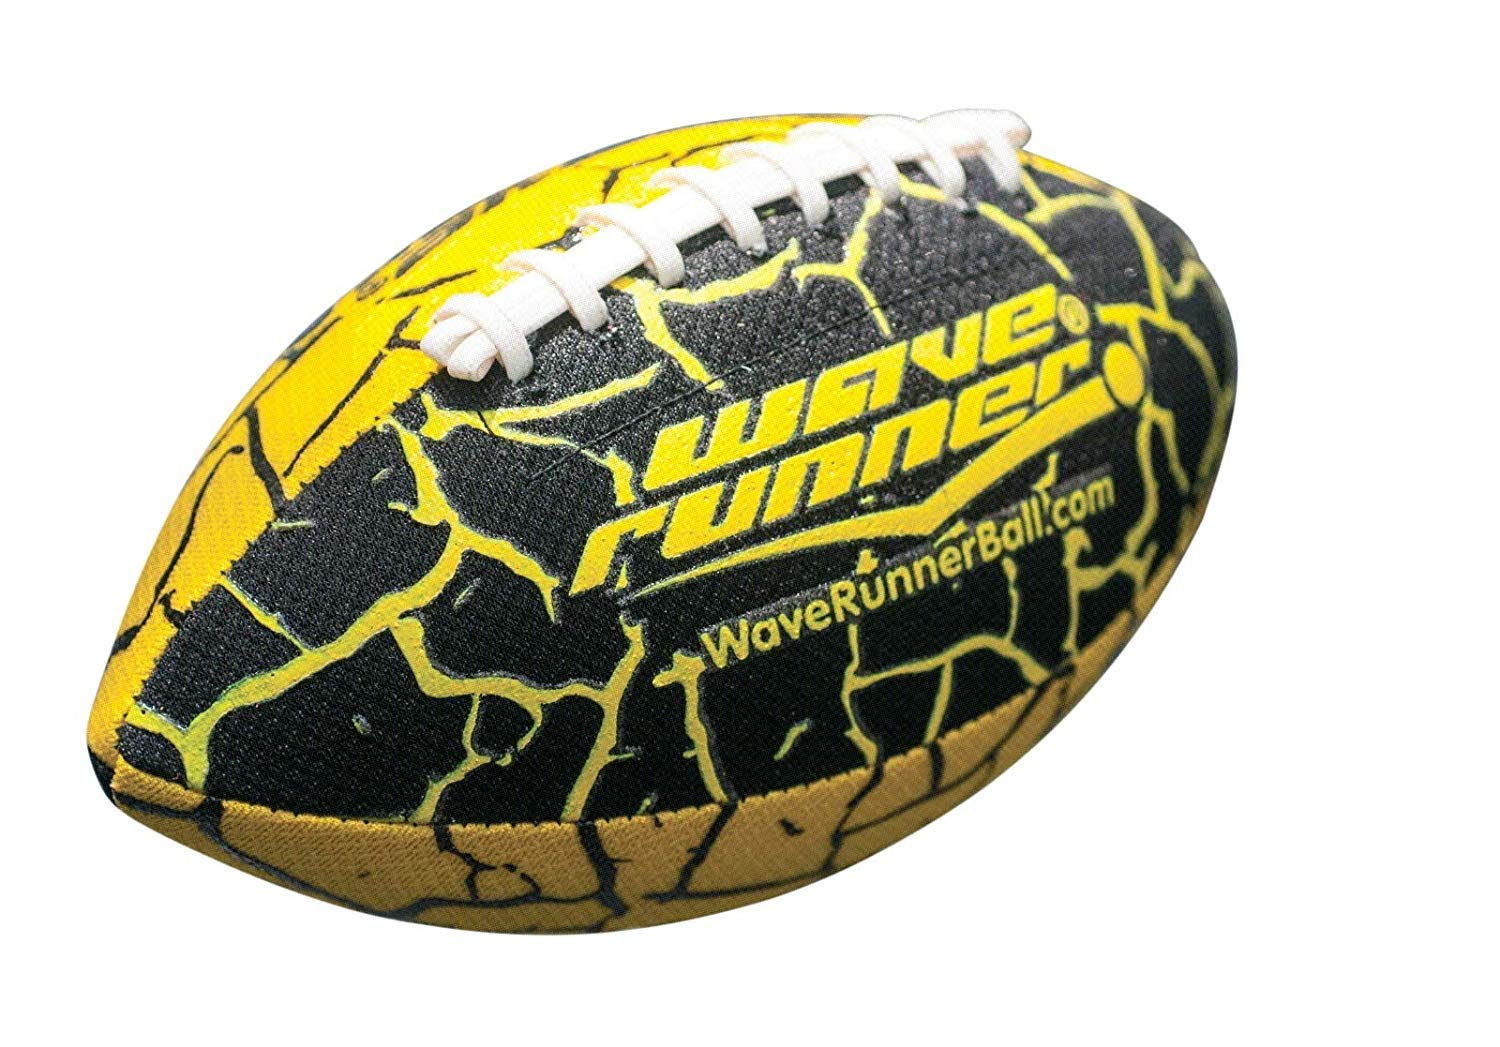 Random Color Lets Play Football in The Water! Wave Runner Grip It Waterproof Football- Size 9.25 Inches with Sure-Grip Technology 2 Pack